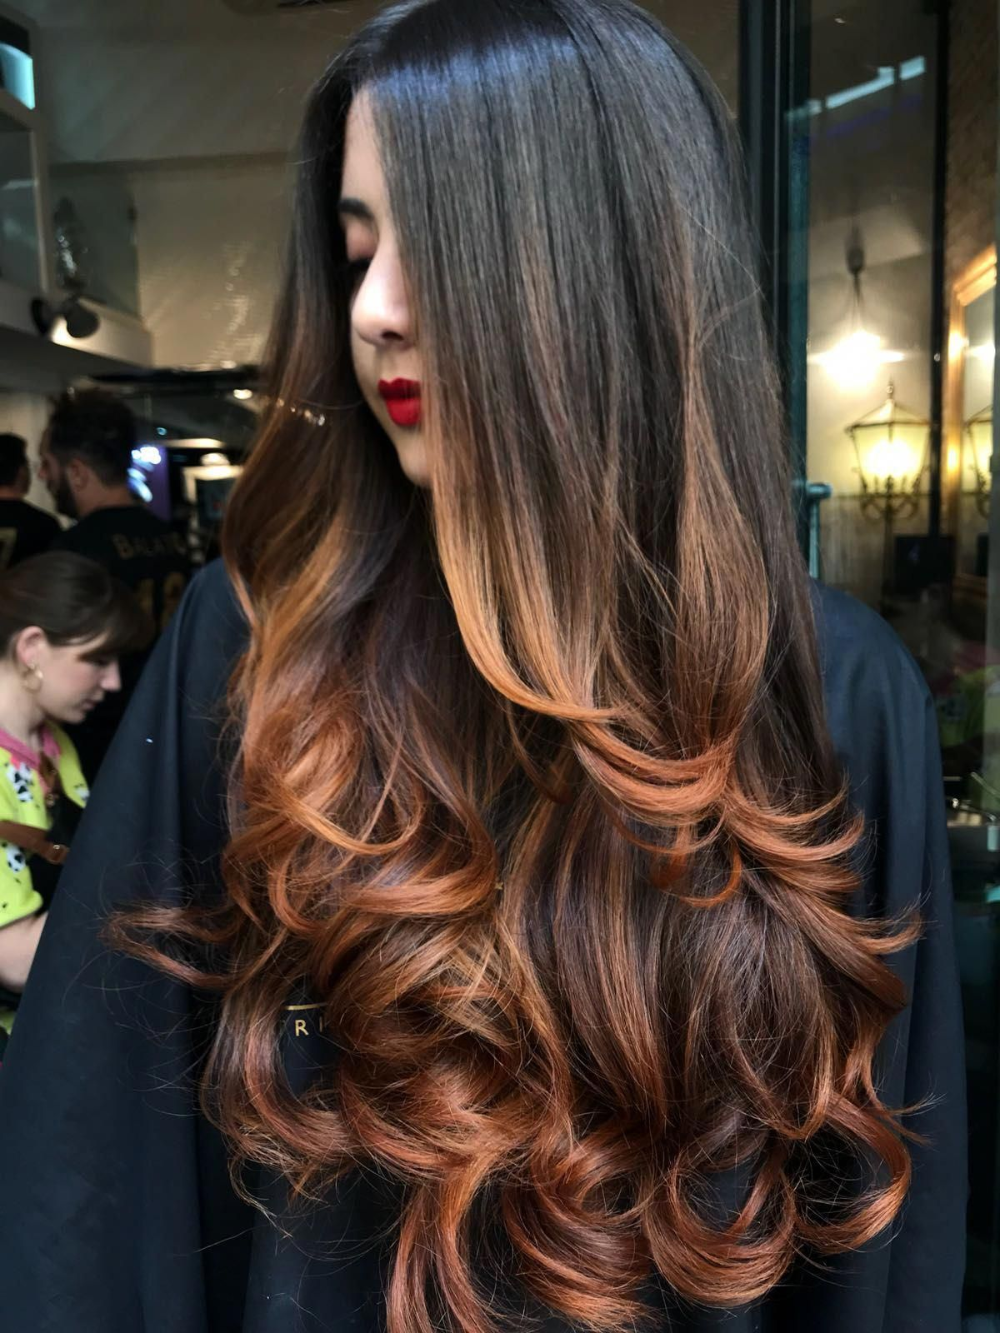 15 Most Beautiful Fall Hairstyles For Long Hair Haircuts Hairstyles 2021 In 2020 Perfect Hair Color Long Hair Styles Haircuts For Long Hair